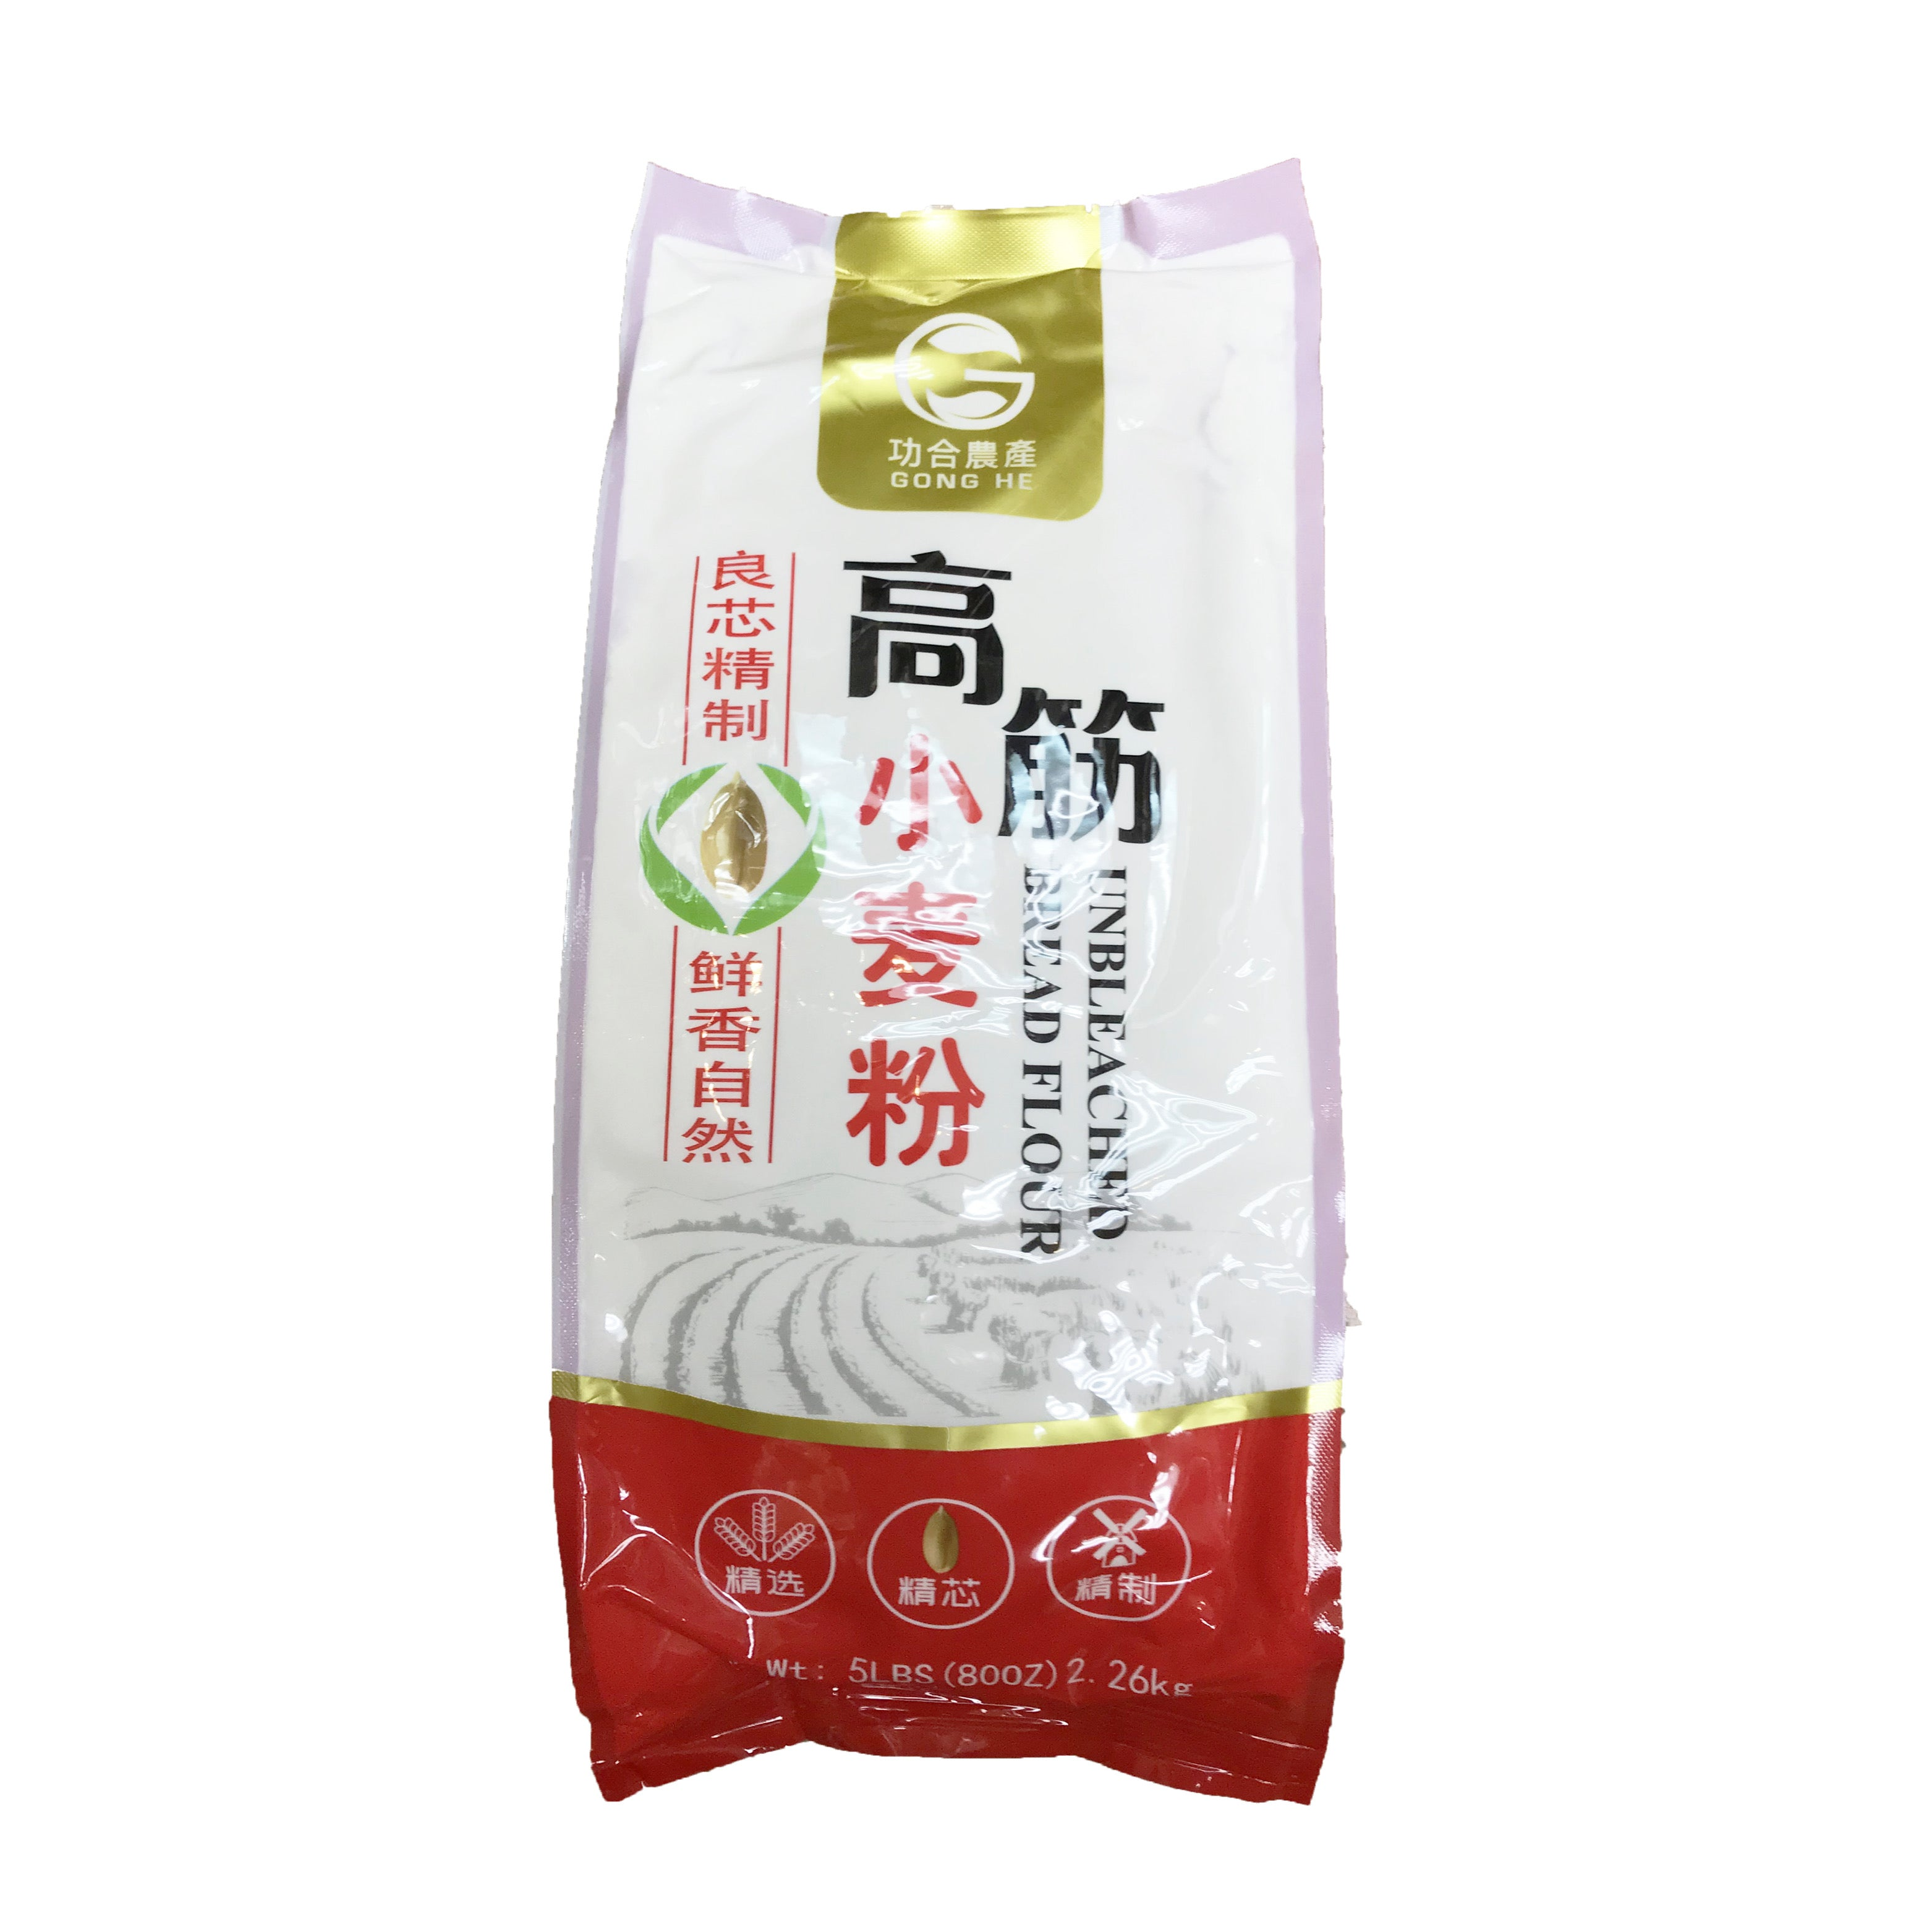 GongHe Unbleached Bread Flour 5lbs